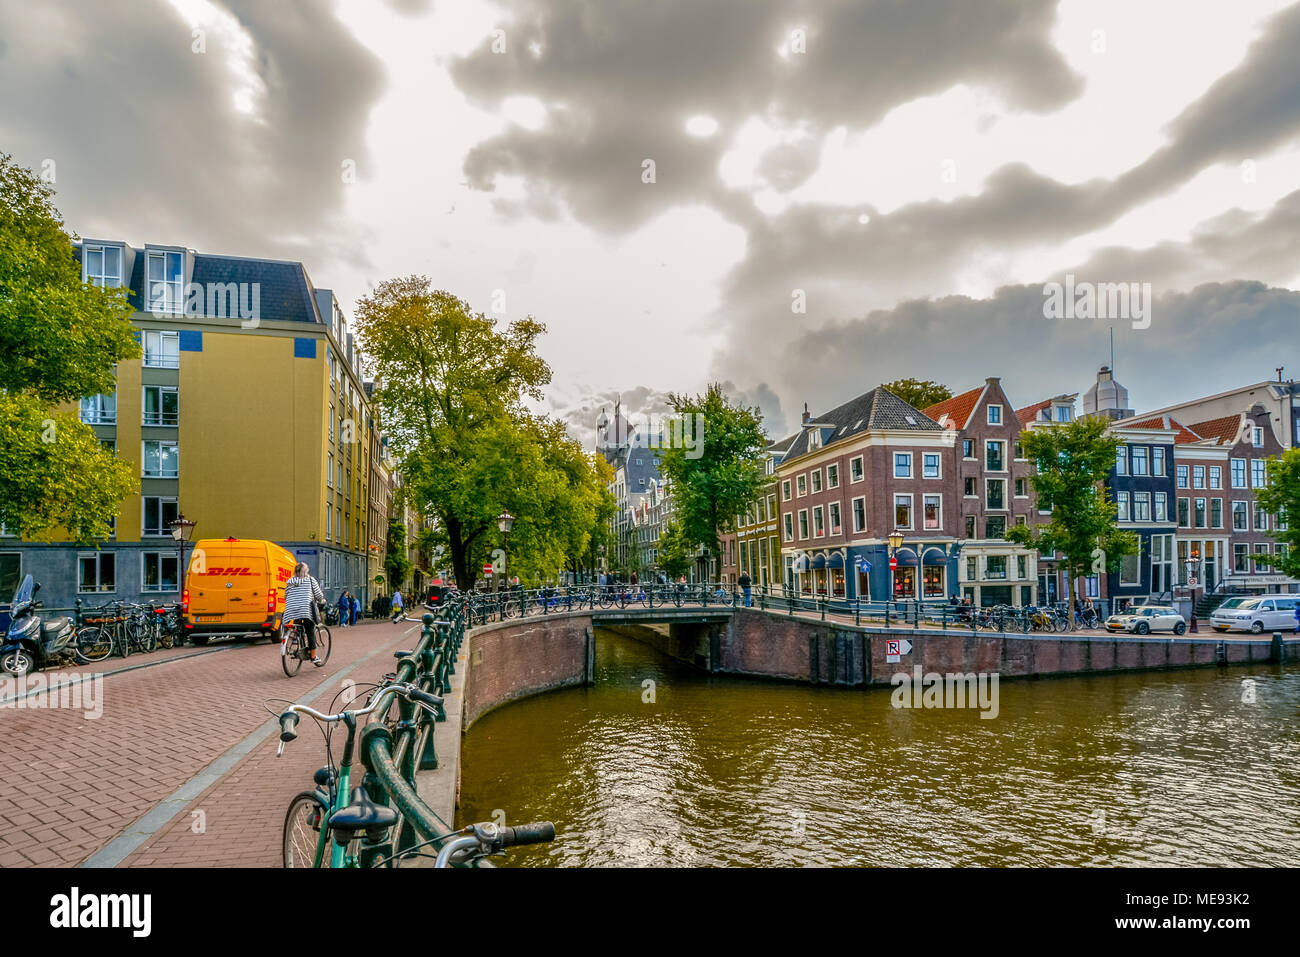 A Dutch woman rides her bike across a bridge over a canal on an overcast autumn day in Amsterdam Netherlands - Stock Image